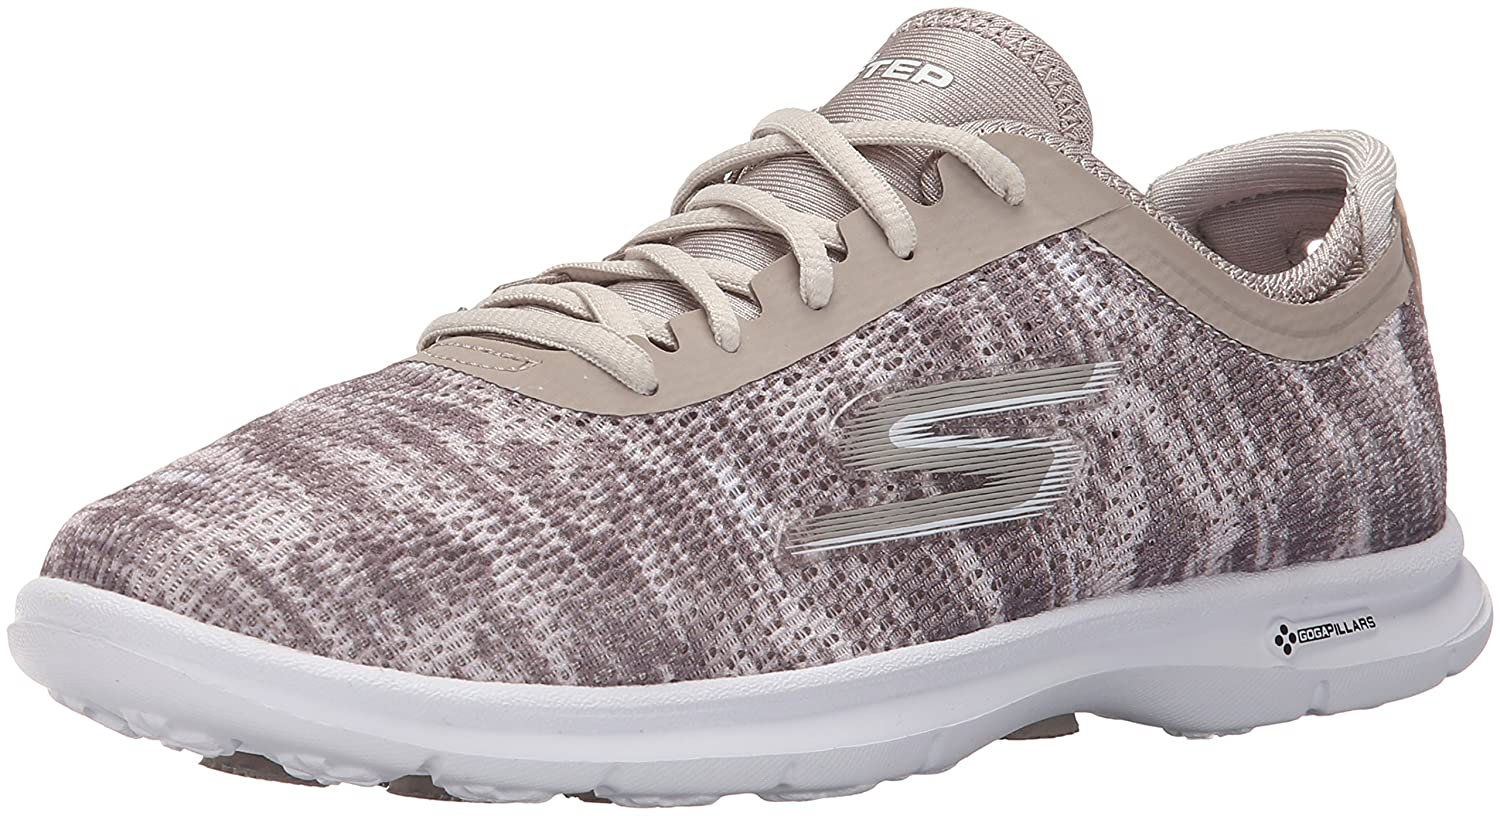 Taupe Skechers Performance Women's Go Step Lace-Up Walking shoes